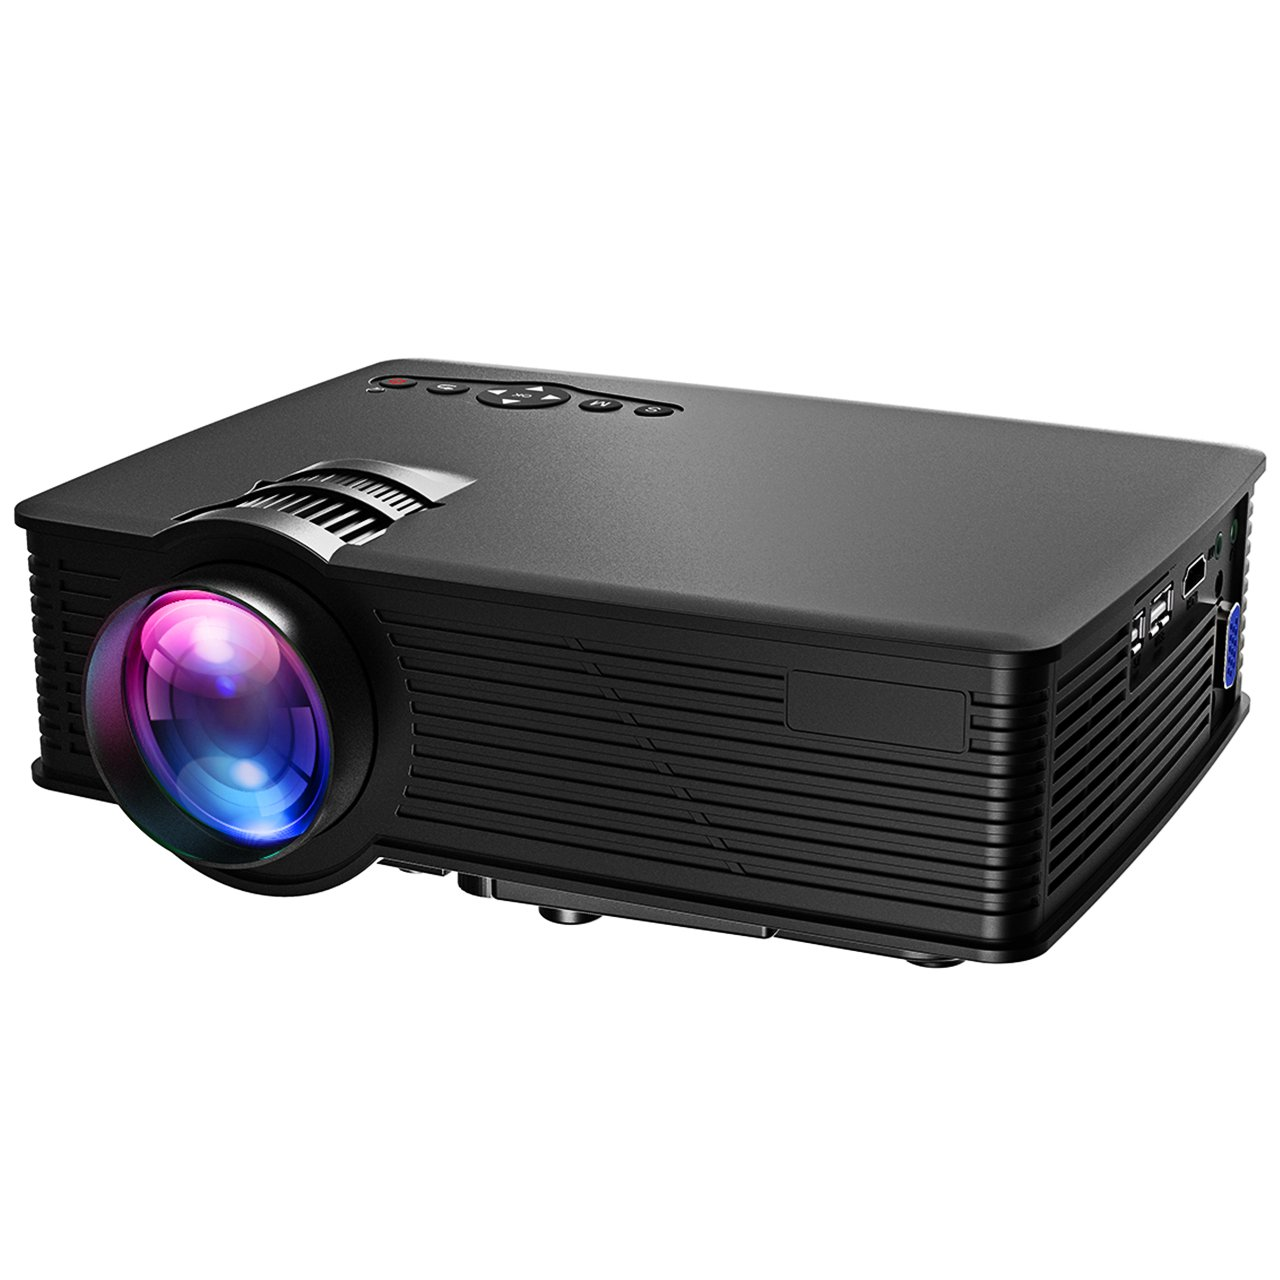 VicTsing Video Projector Mini Portable HD 1080P LED Home Projector, Support USB VGA AV HDMI SD Card Input Home Cinema Theater for Video Movie Party Games Home Entertainment, Black by VicTsing